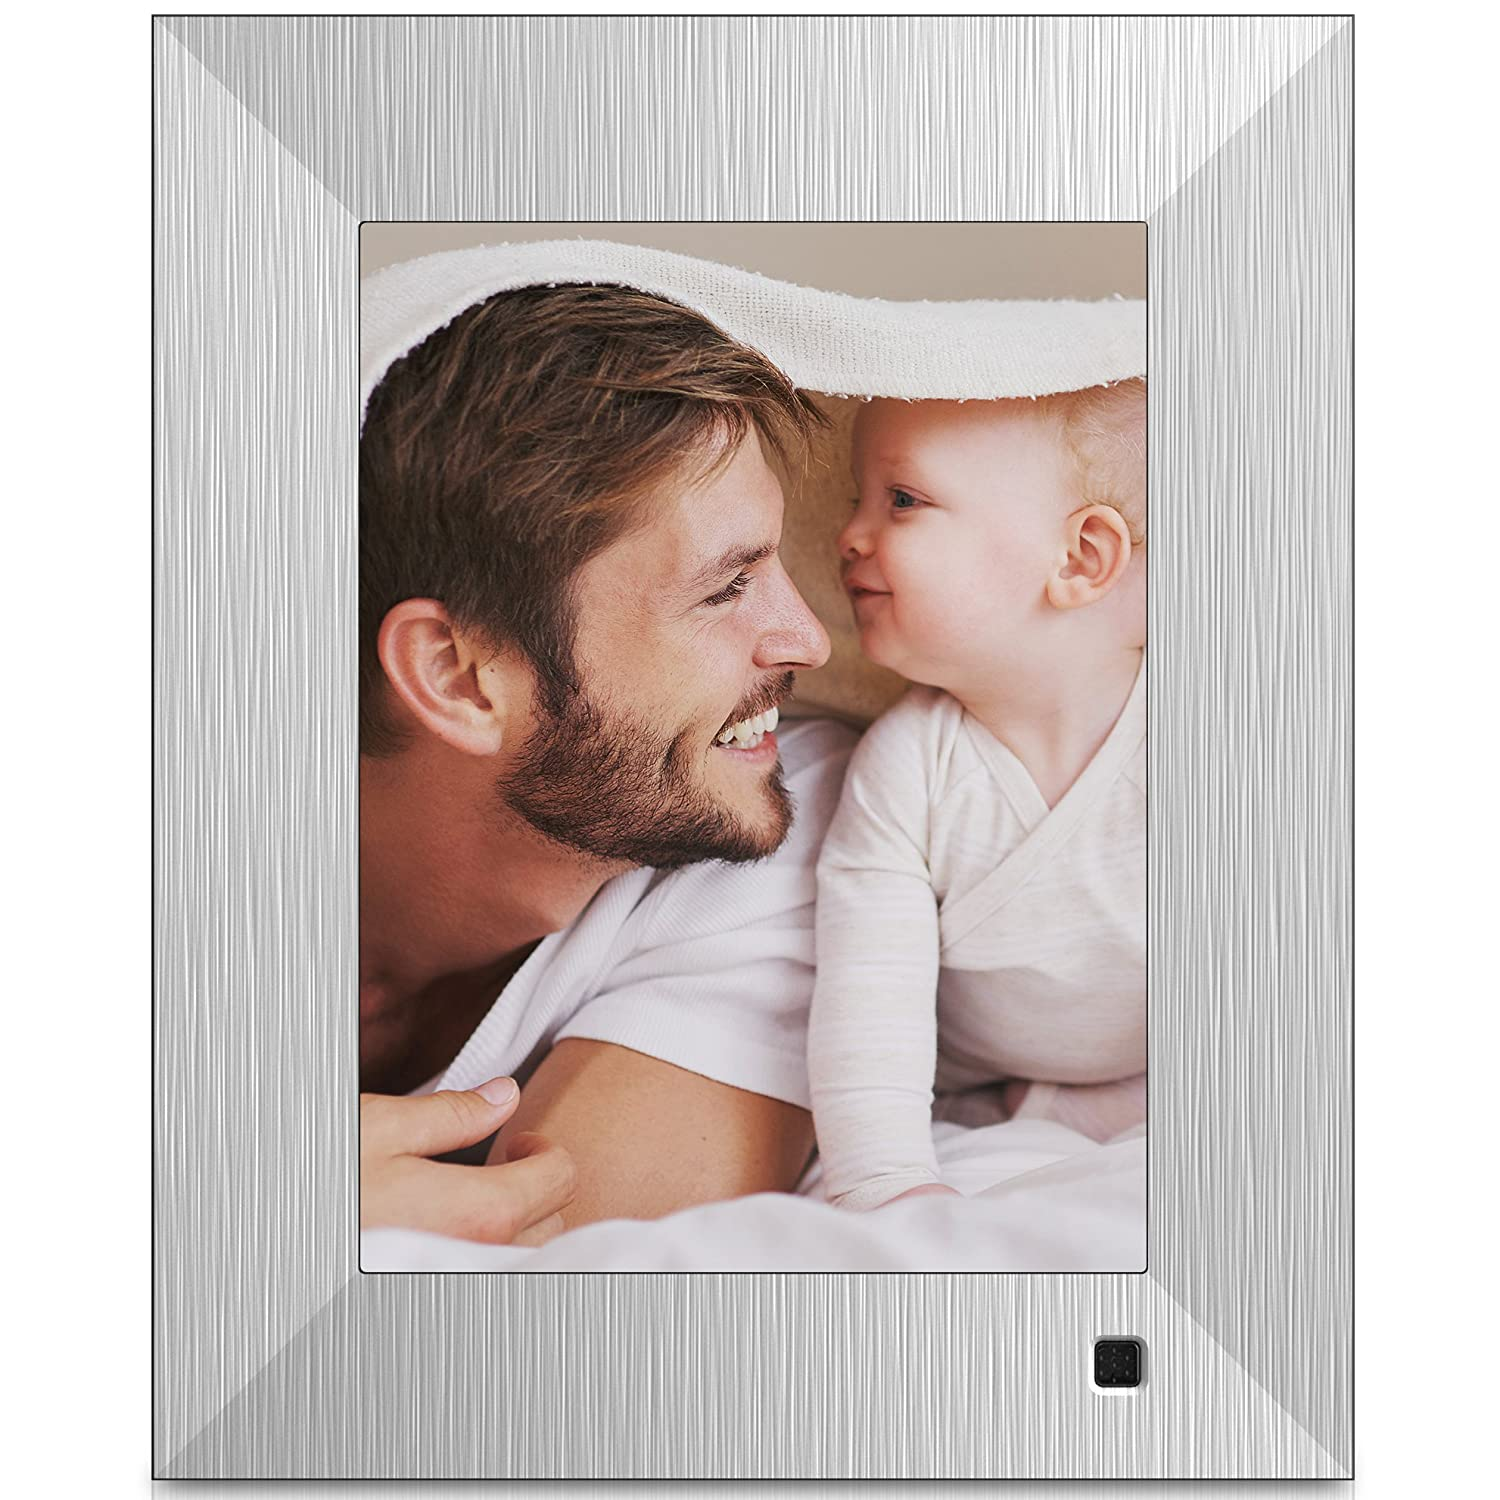 NIX Lux Digital Non-WiFi Photo & HD Video Frame: Amazon.co.uk ...